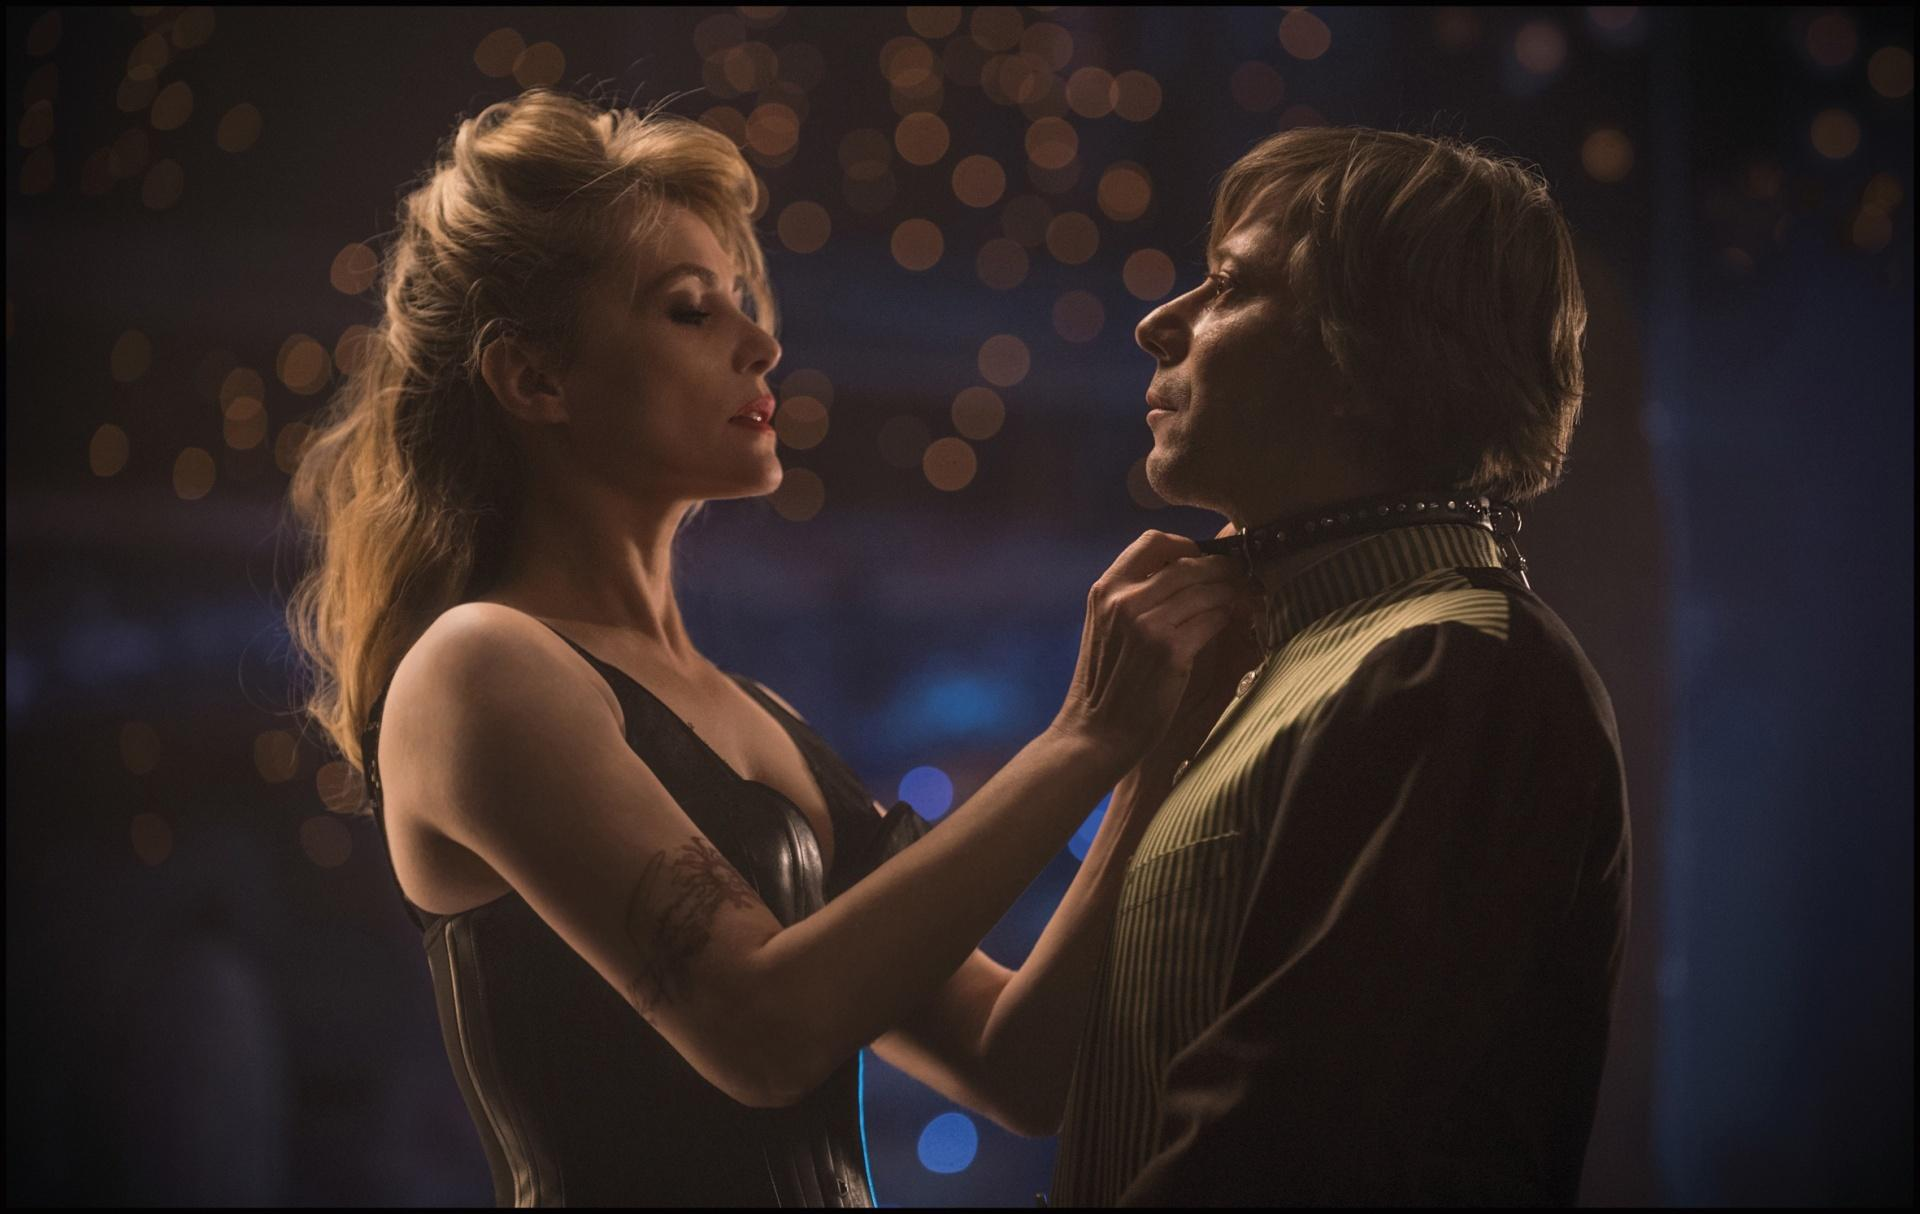 still-of-mathieu-amalric-and-emmanuelle-seigner-in-venus-in-fur-(2013)-large-picture